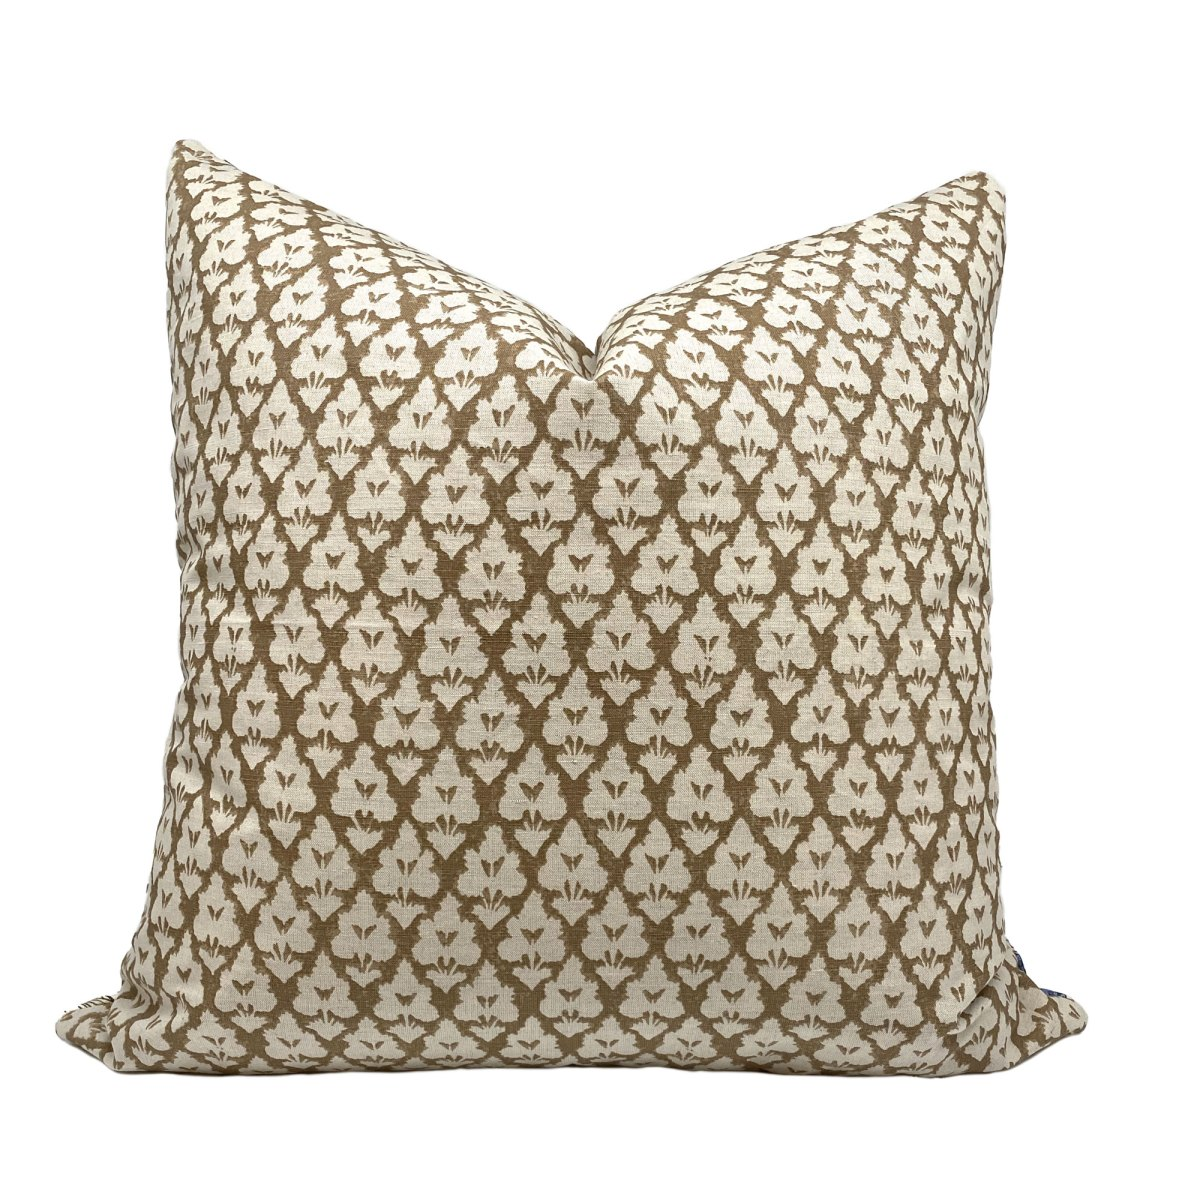 Arboreta pillow cover